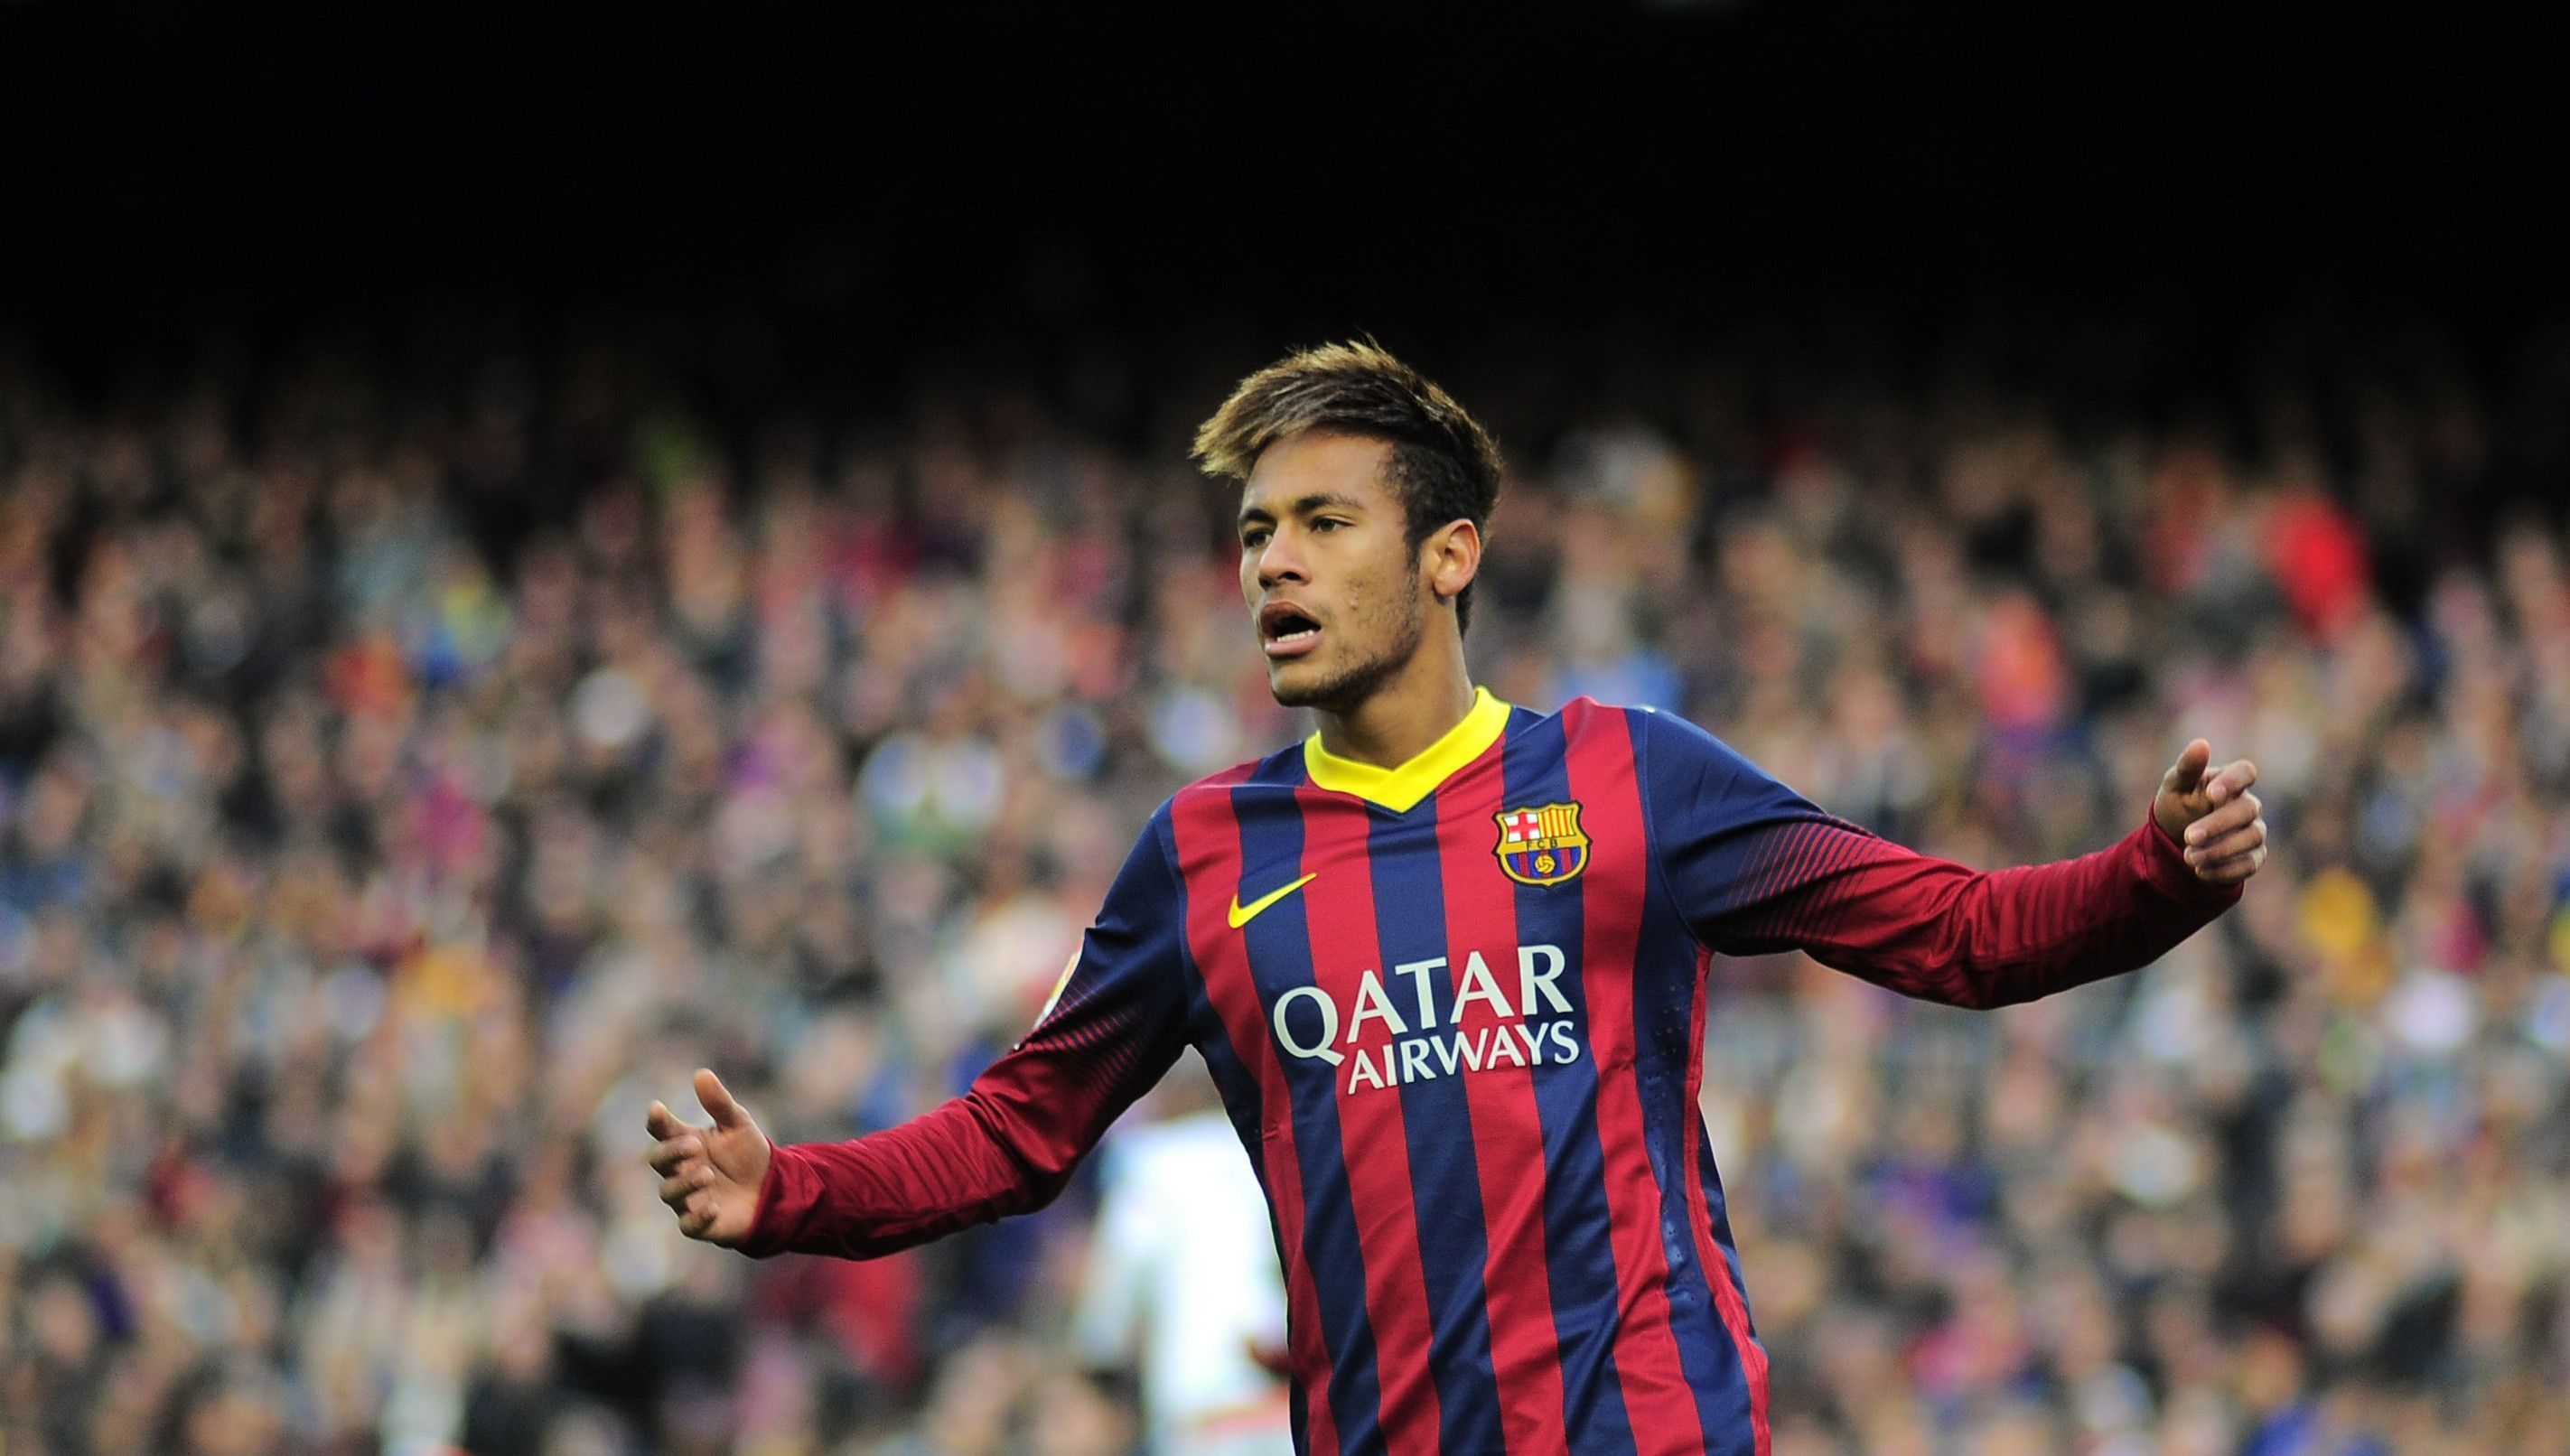 neymar football soccer player free hd ball goal enjoying mobile desktop bakground download wallpaper photos